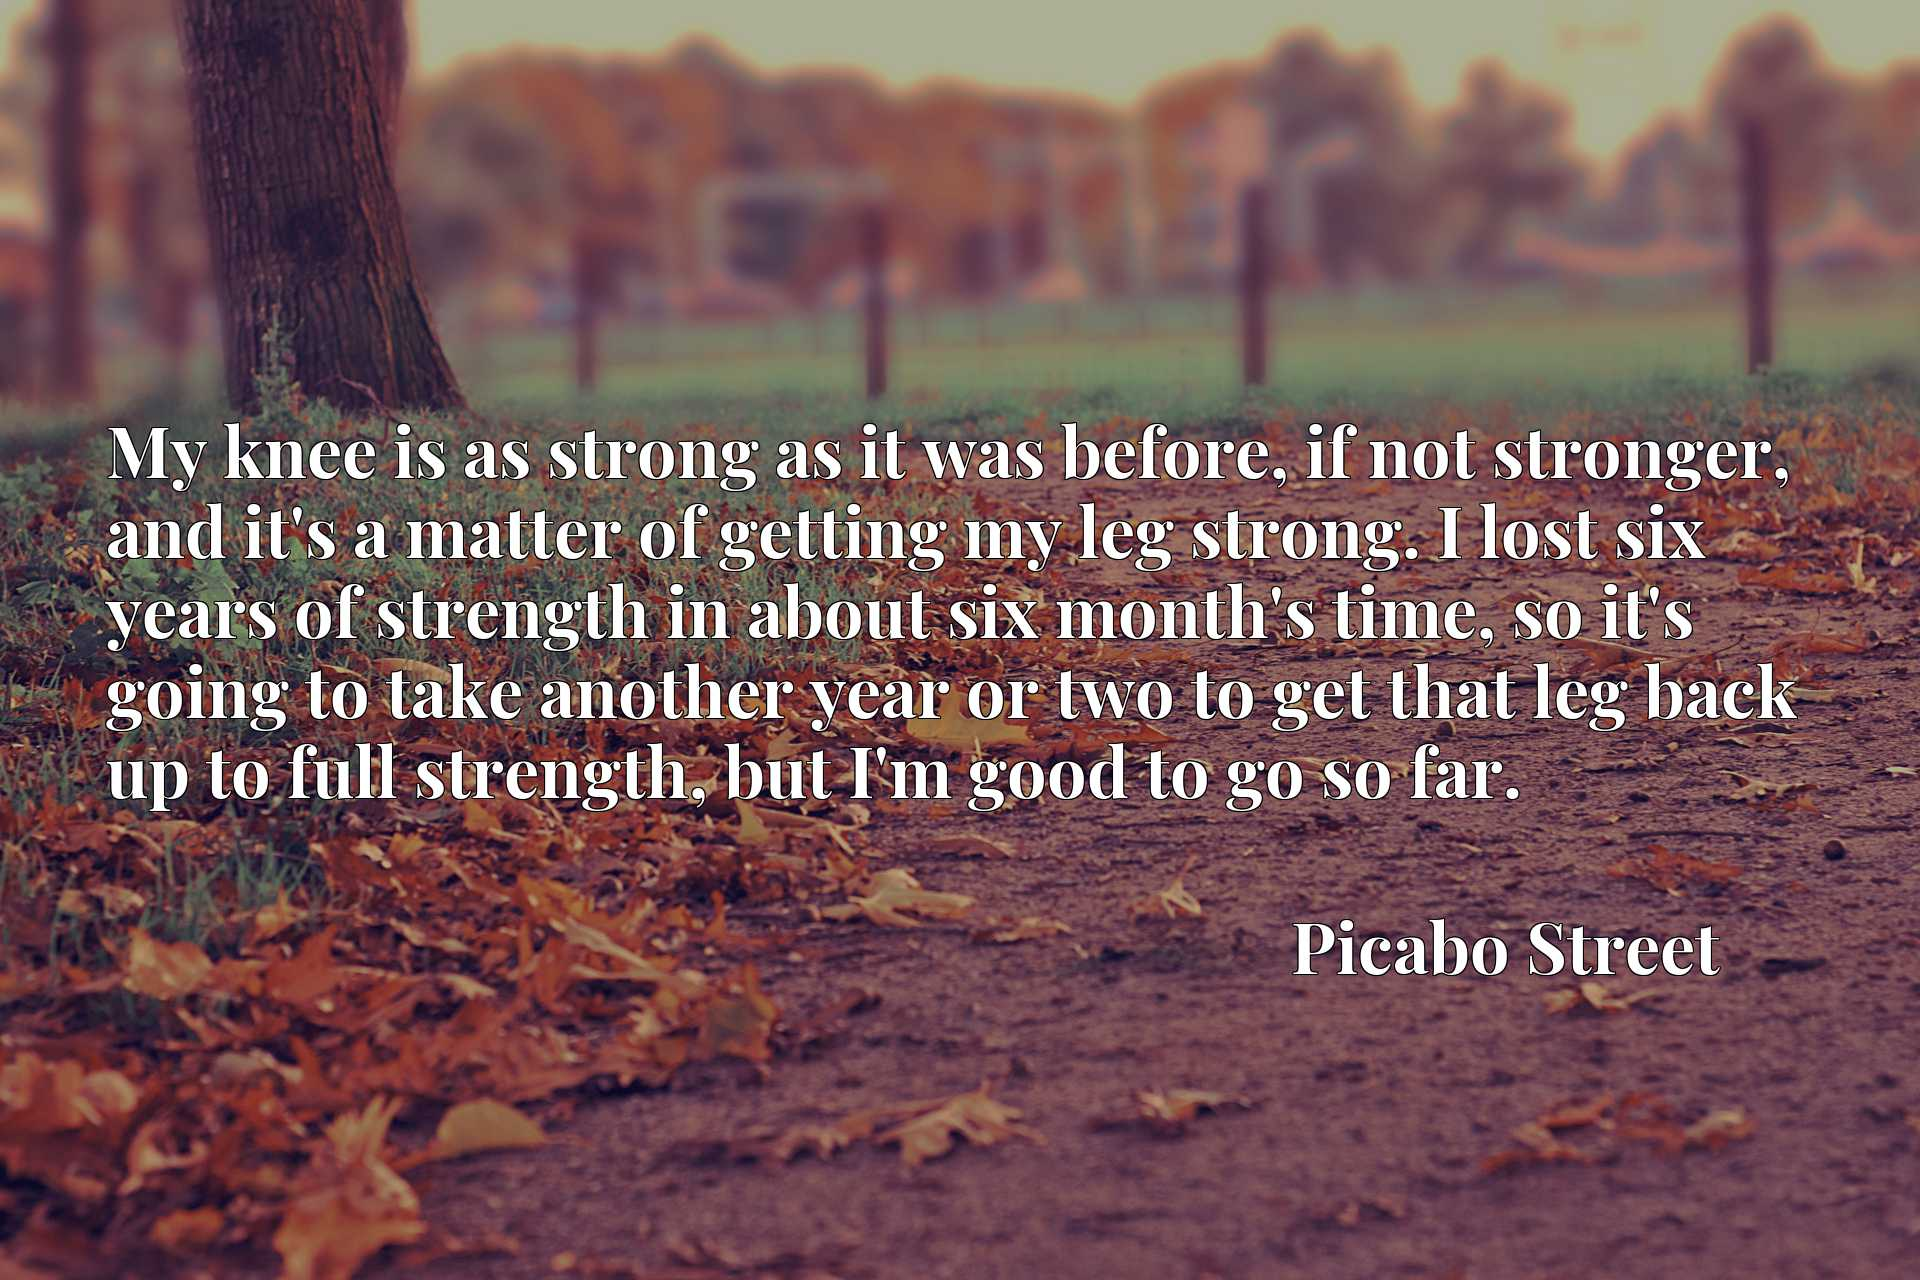 My knee is as strong as it was before, if not stronger, and it's a matter of getting my leg strong. I lost six years of strength in about six month's time, so it's going to take another year or two to get that leg back up to full strength, but I'm good to go so far.